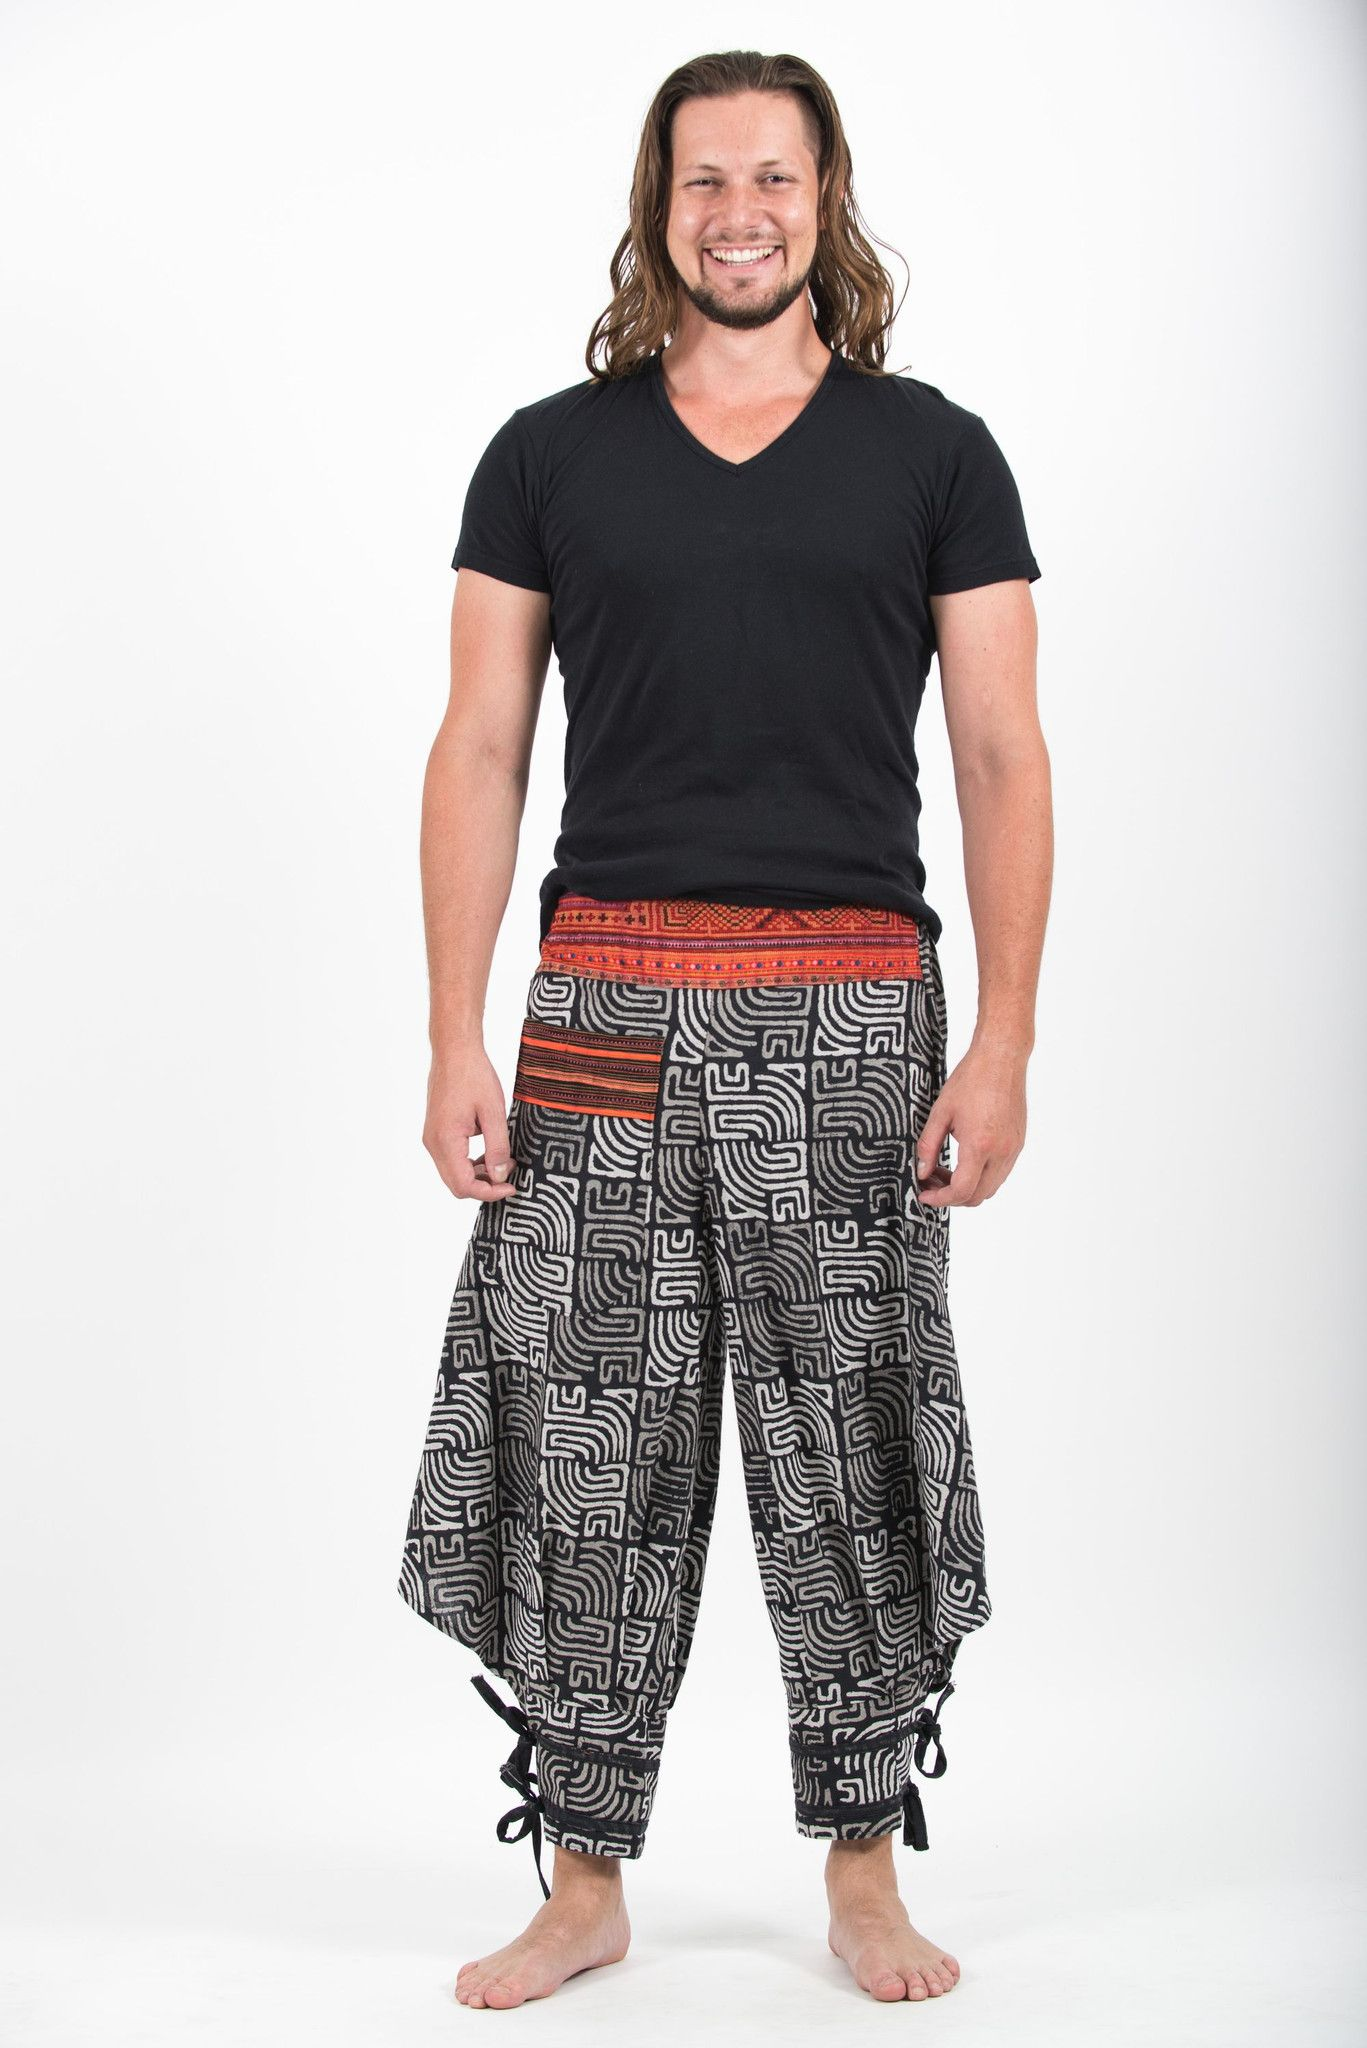 Maze Prints Thai Hill Tribe Fabric Men's Harem Pants with Ankle Straps in Black